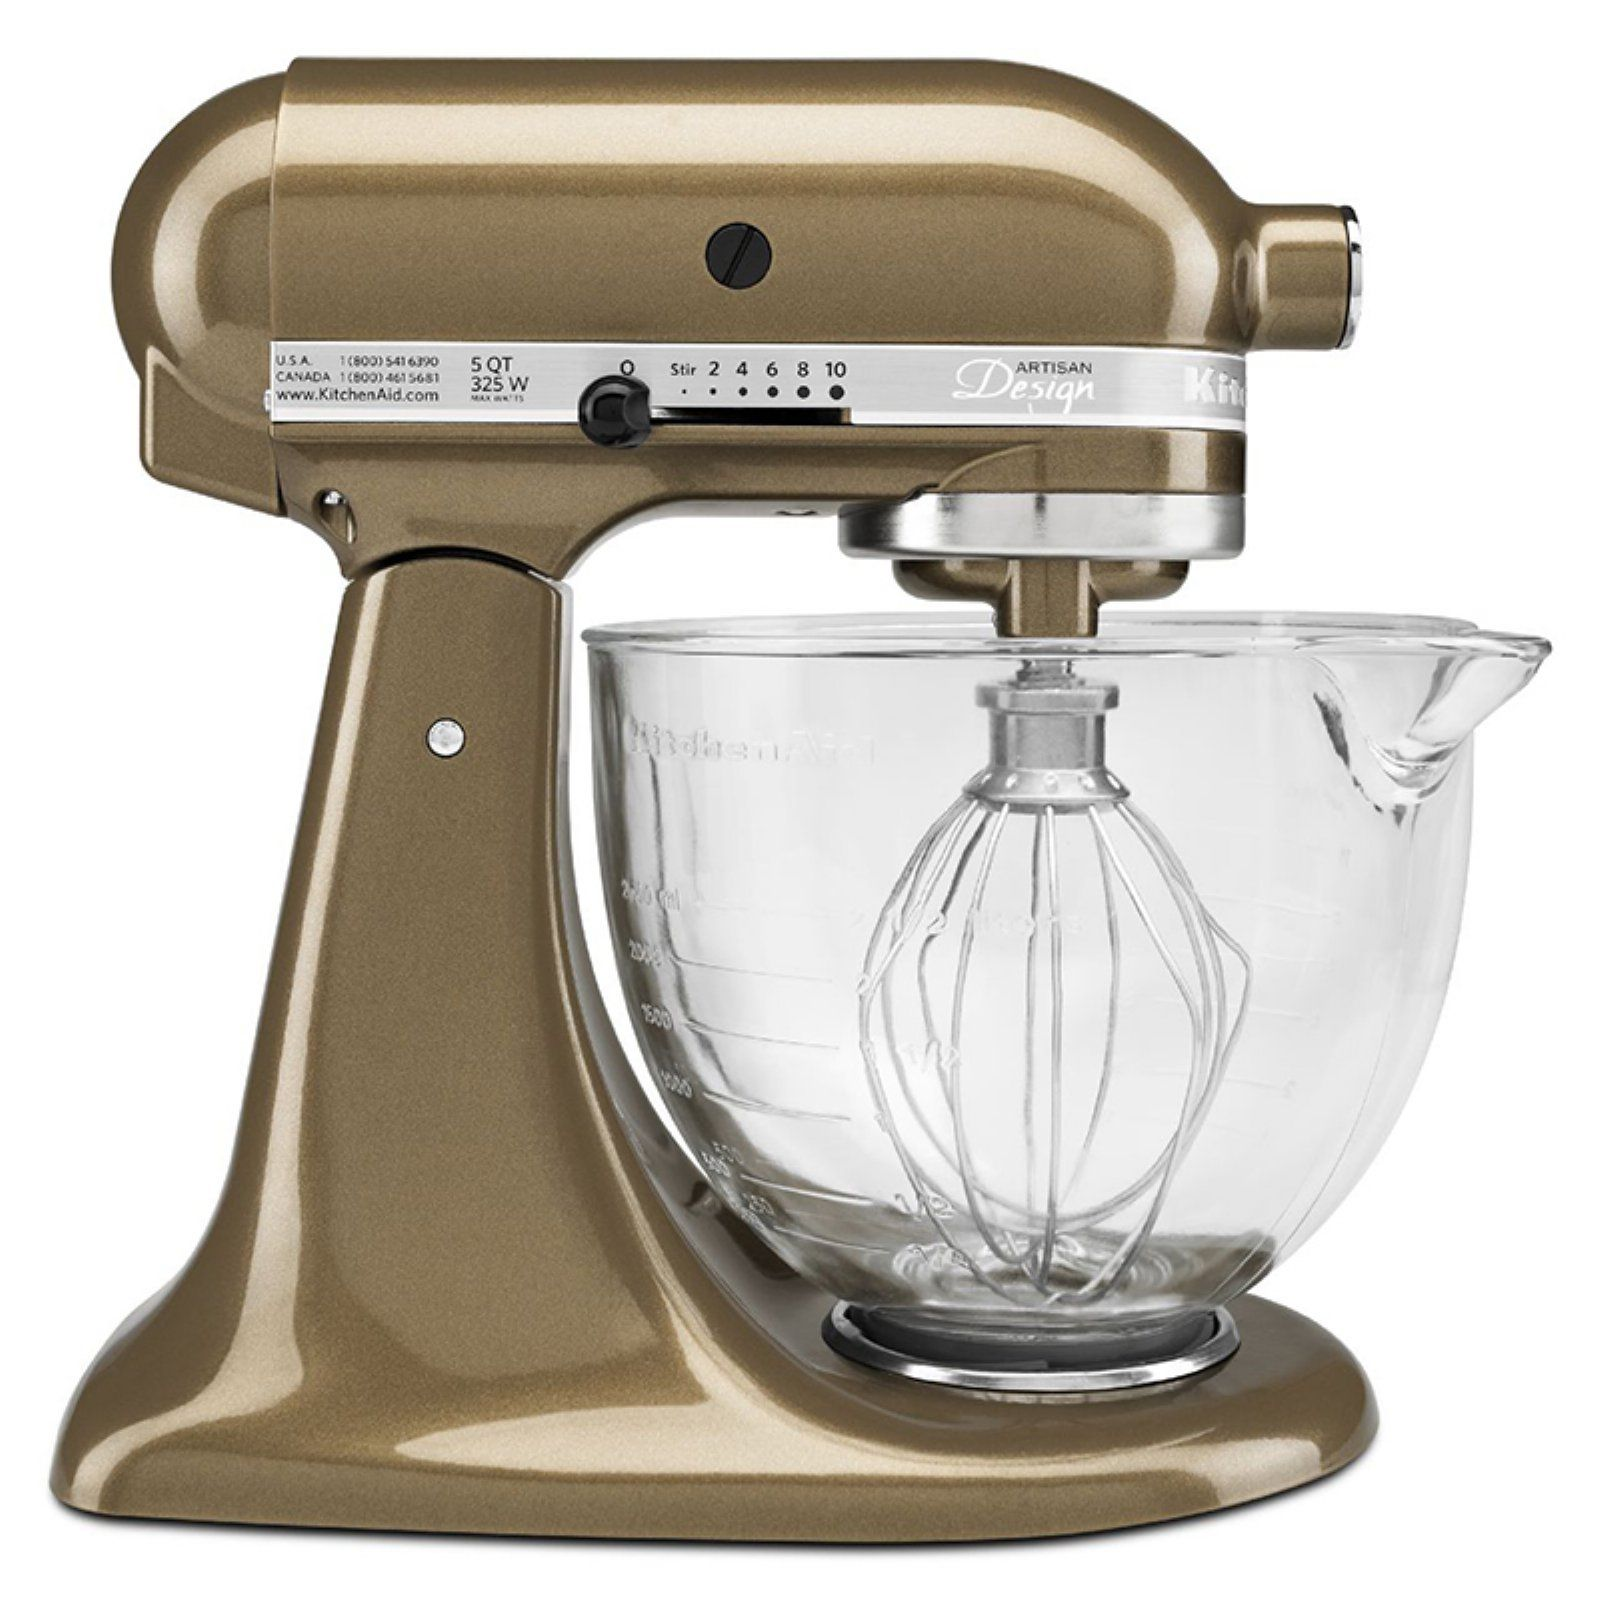 kitchenaid ksm155gbtf 5 qt artisan series stand mixer with glass rh pinterest com